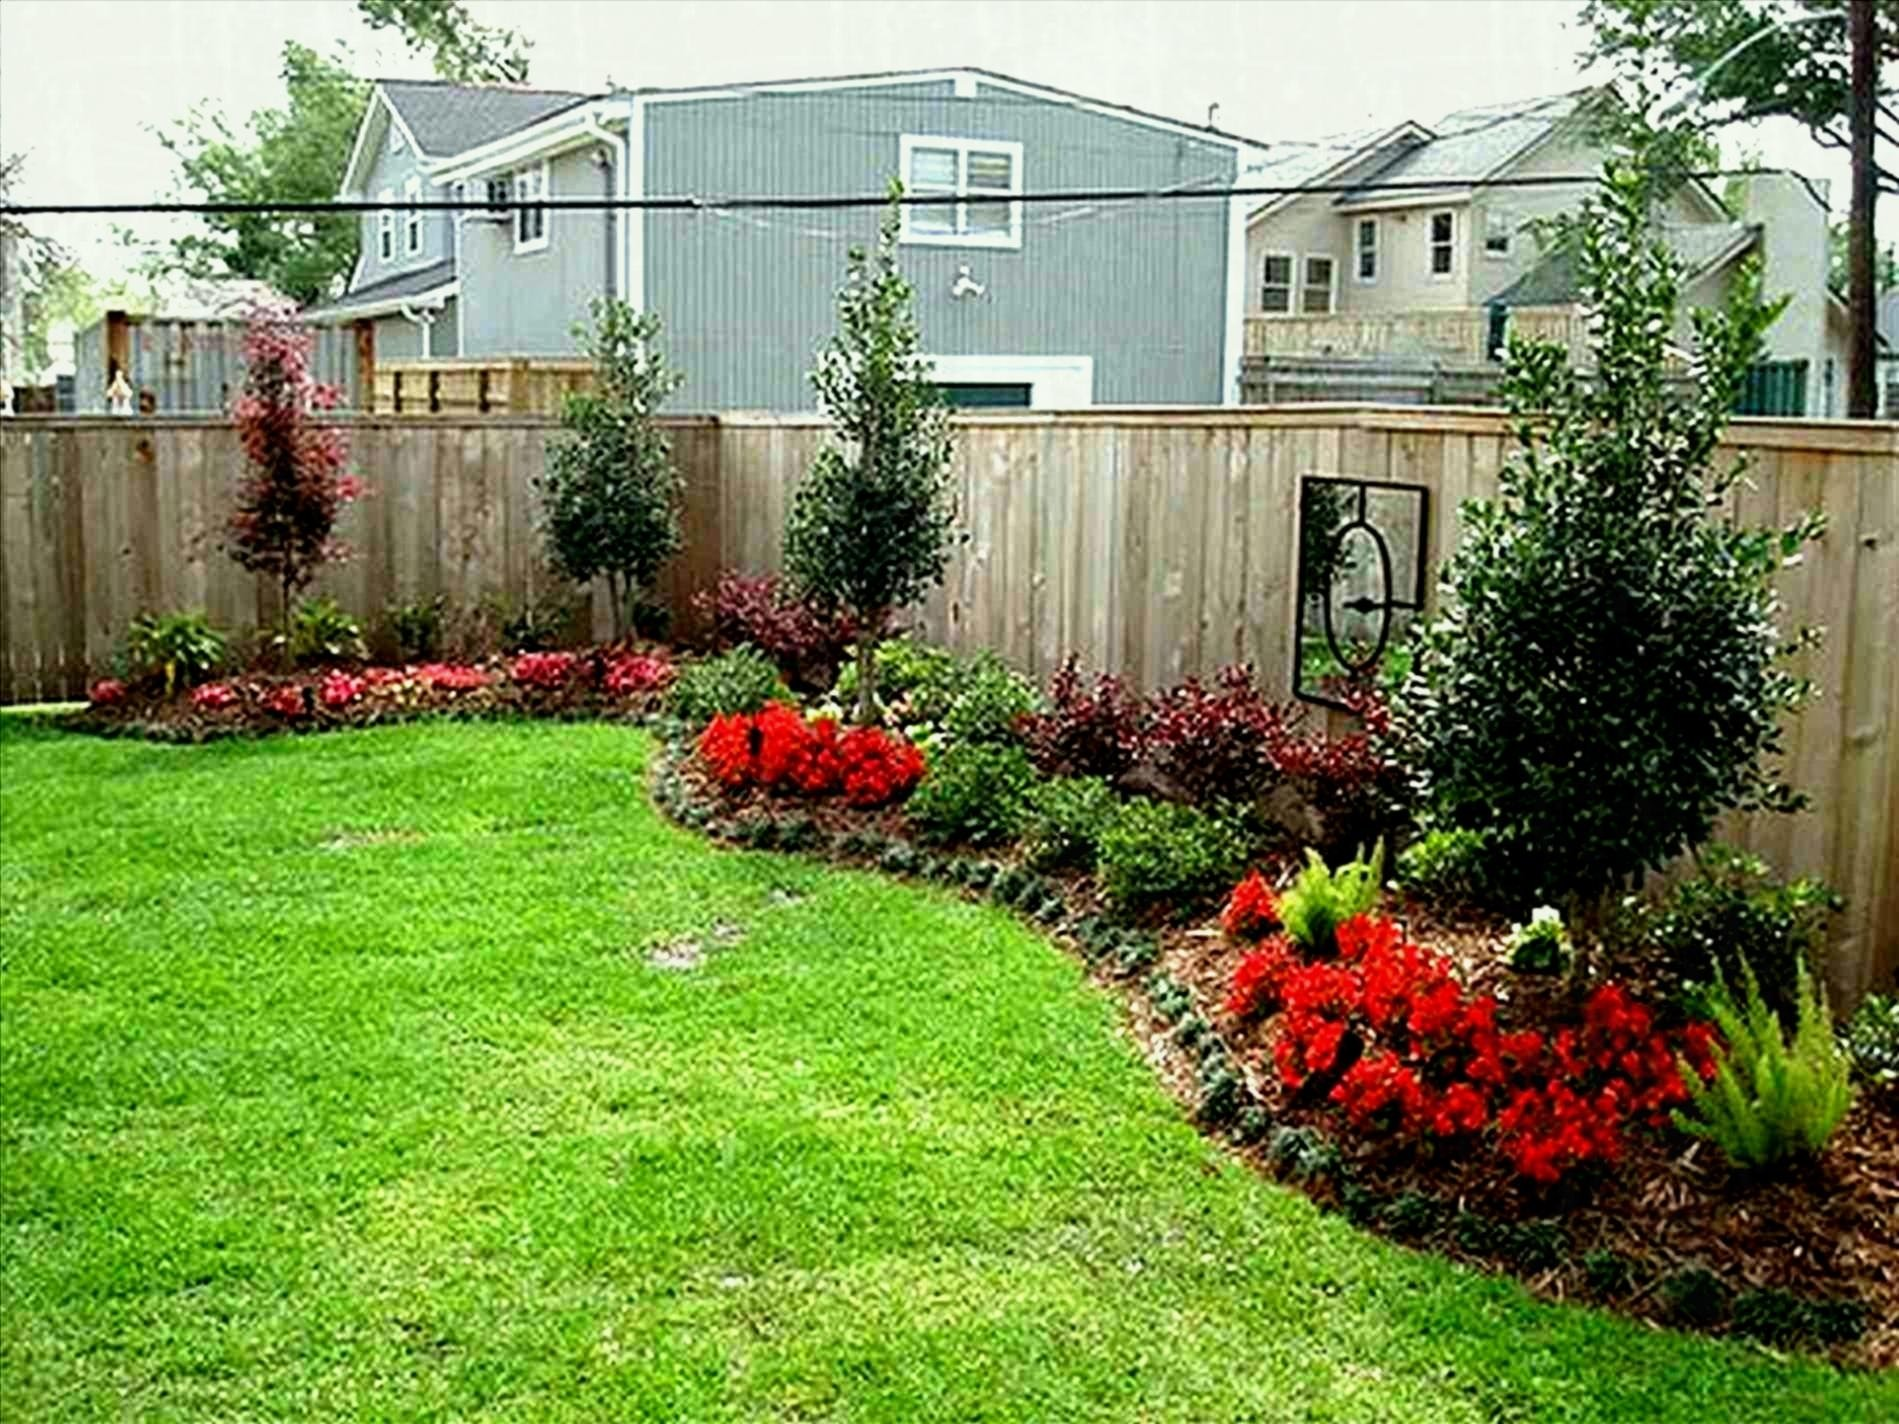 10 Trendy Simple Front Yard Landscaping Ideas 2020